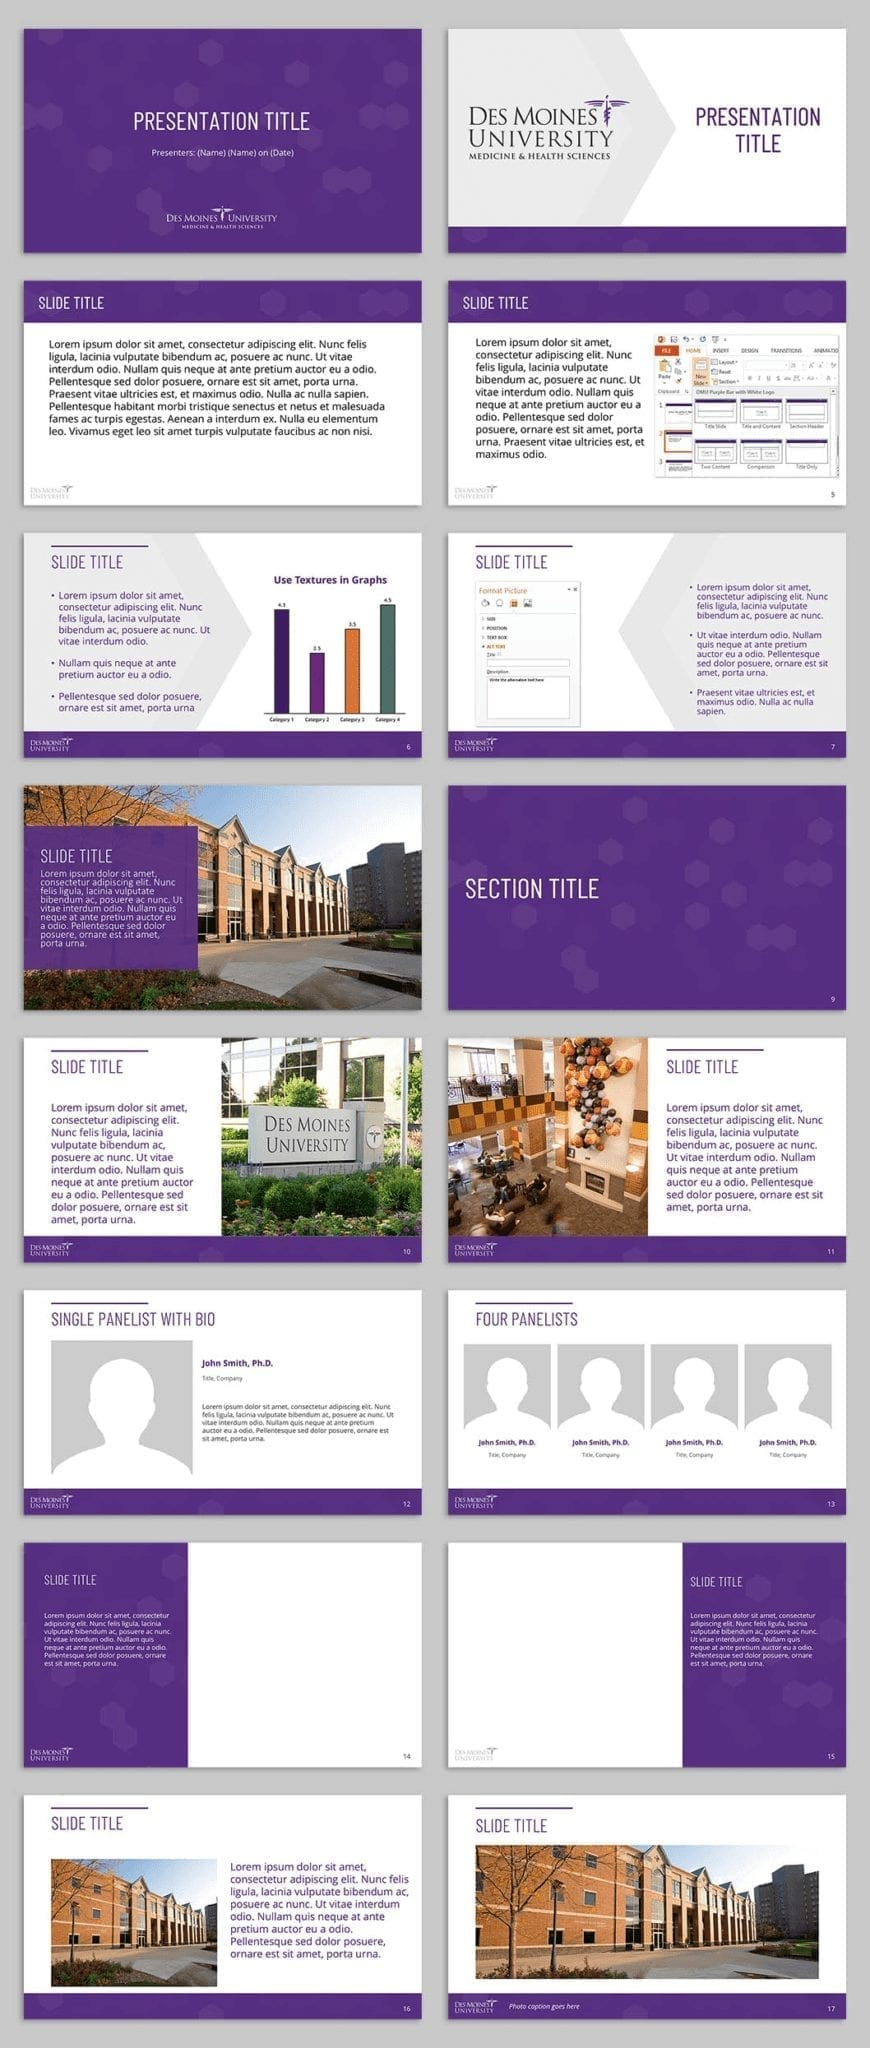 DMU PowerPoint Examples